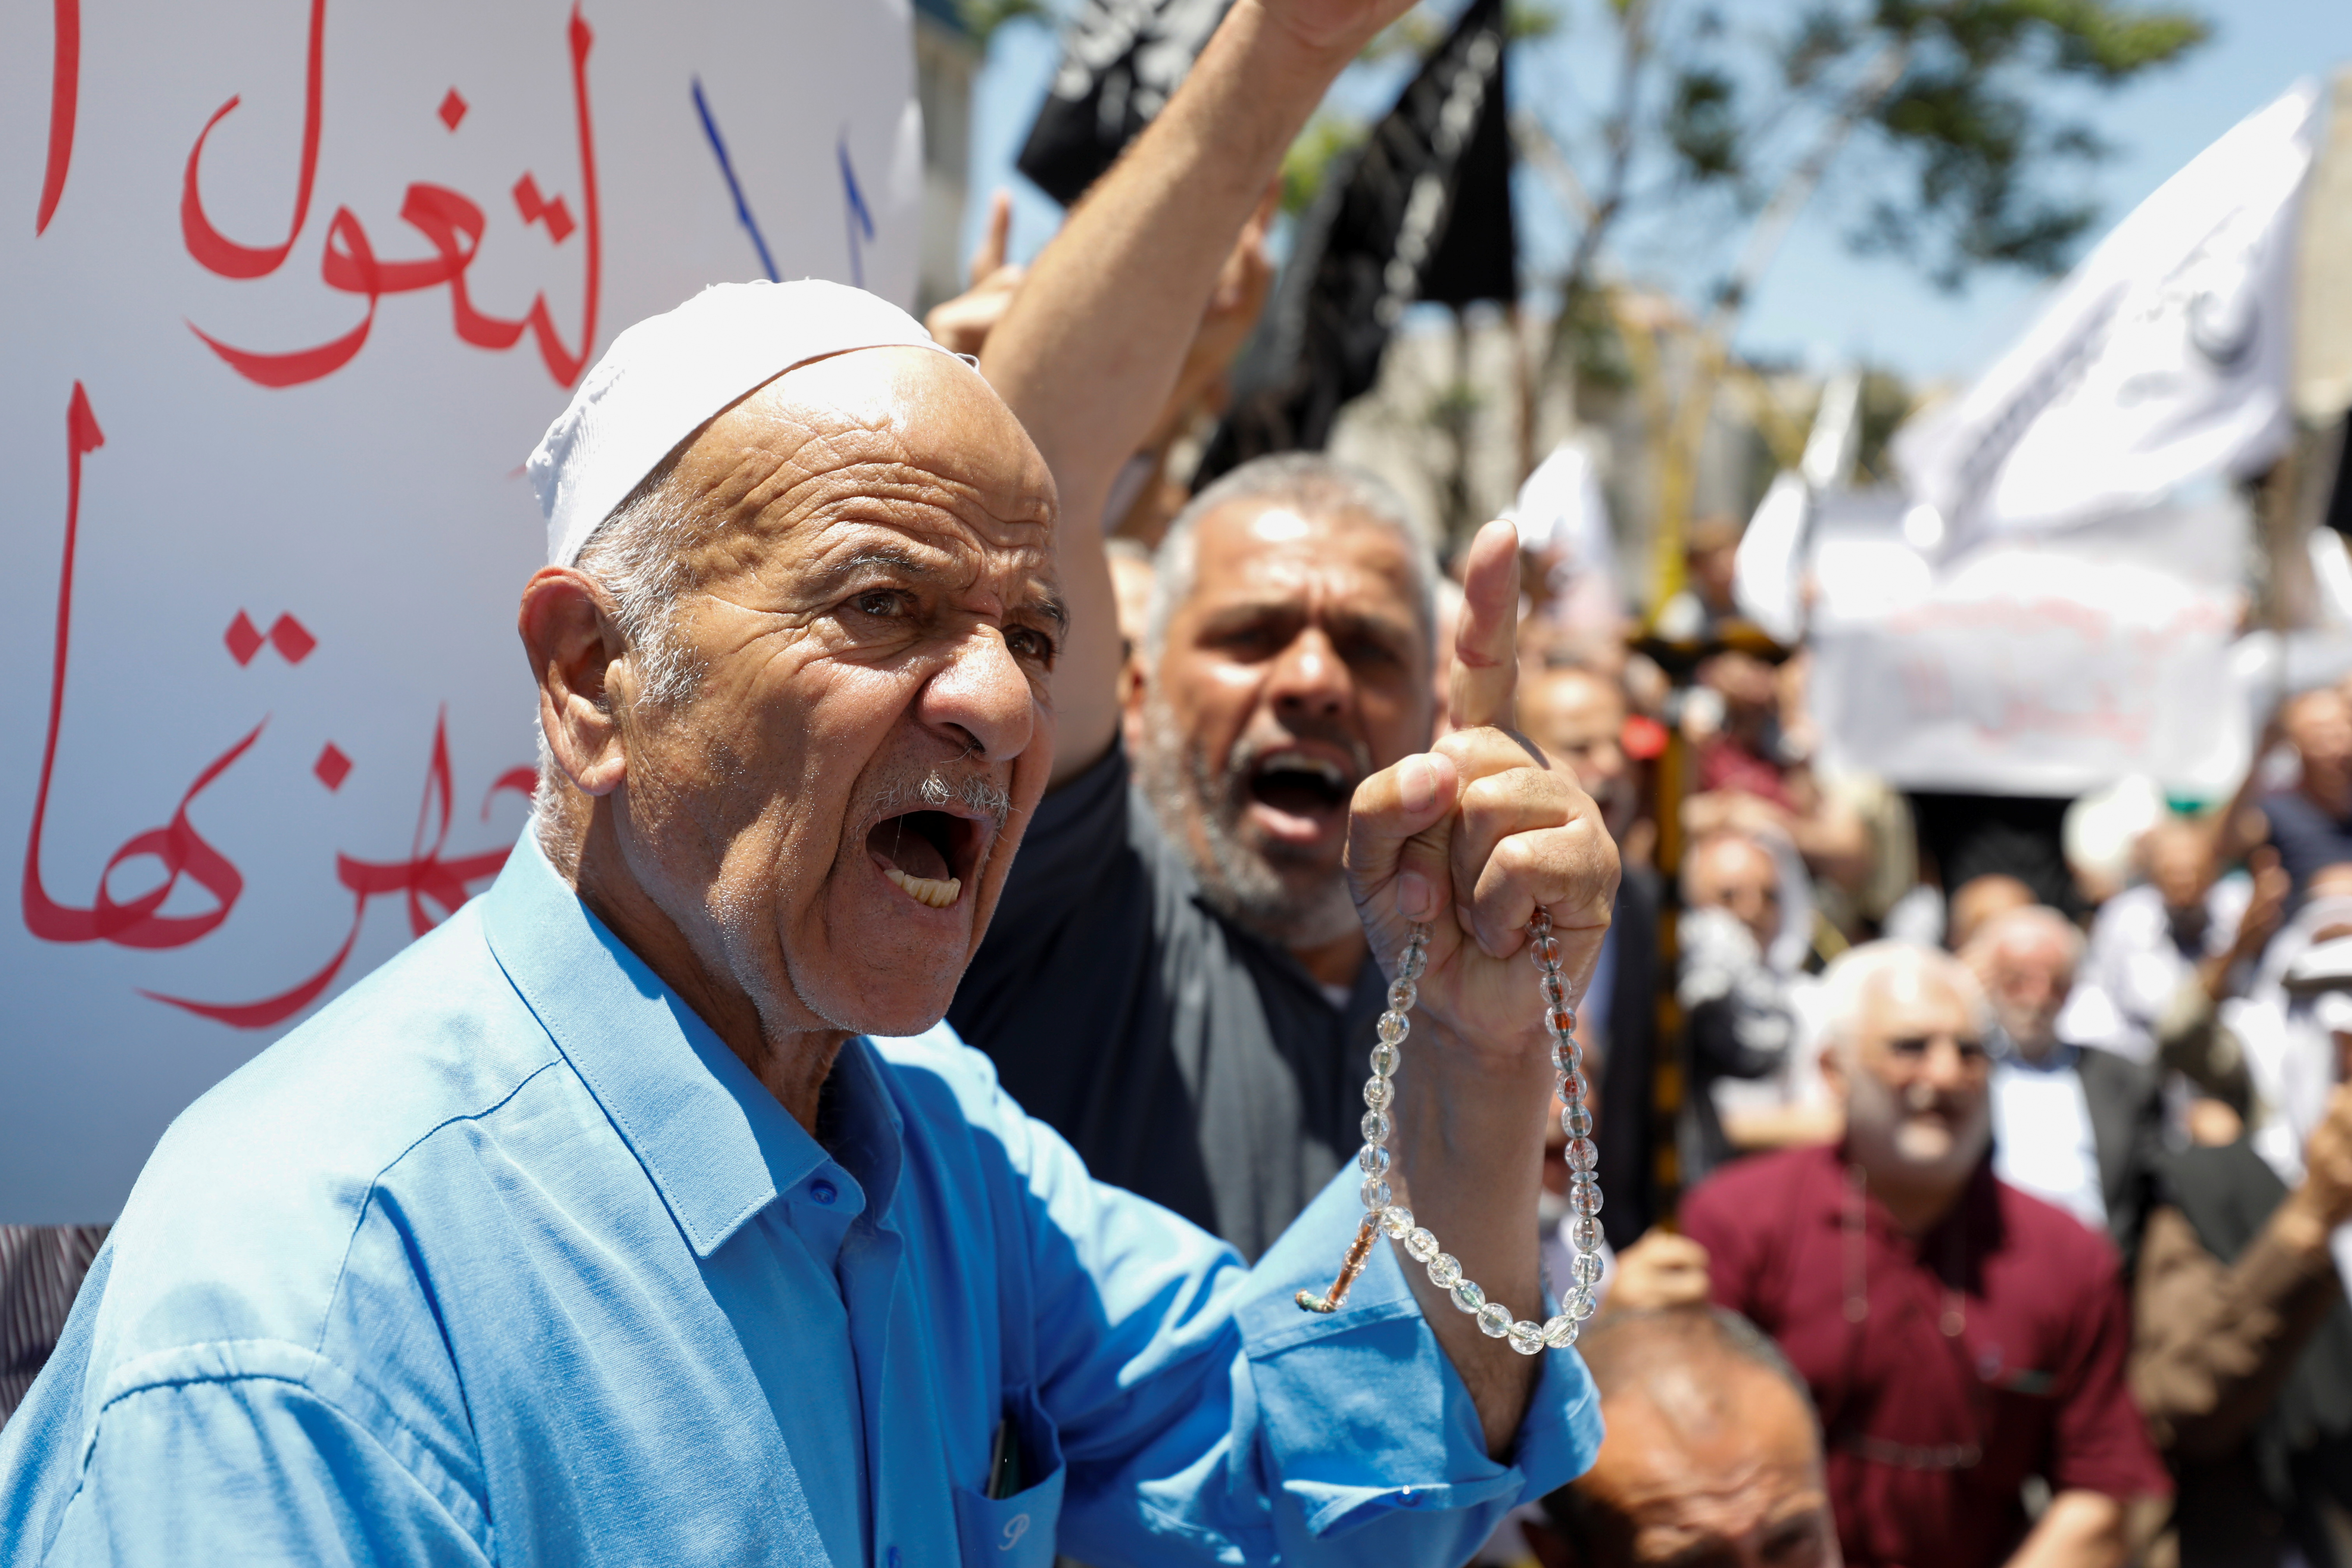 People take part in a protest over the death of Nizar Banat, a critic of the Palestinian Authority, in Hebron, in the Israeli-occupied West Bank, June 26, 2021. REUTERS/Mussa Qawasma